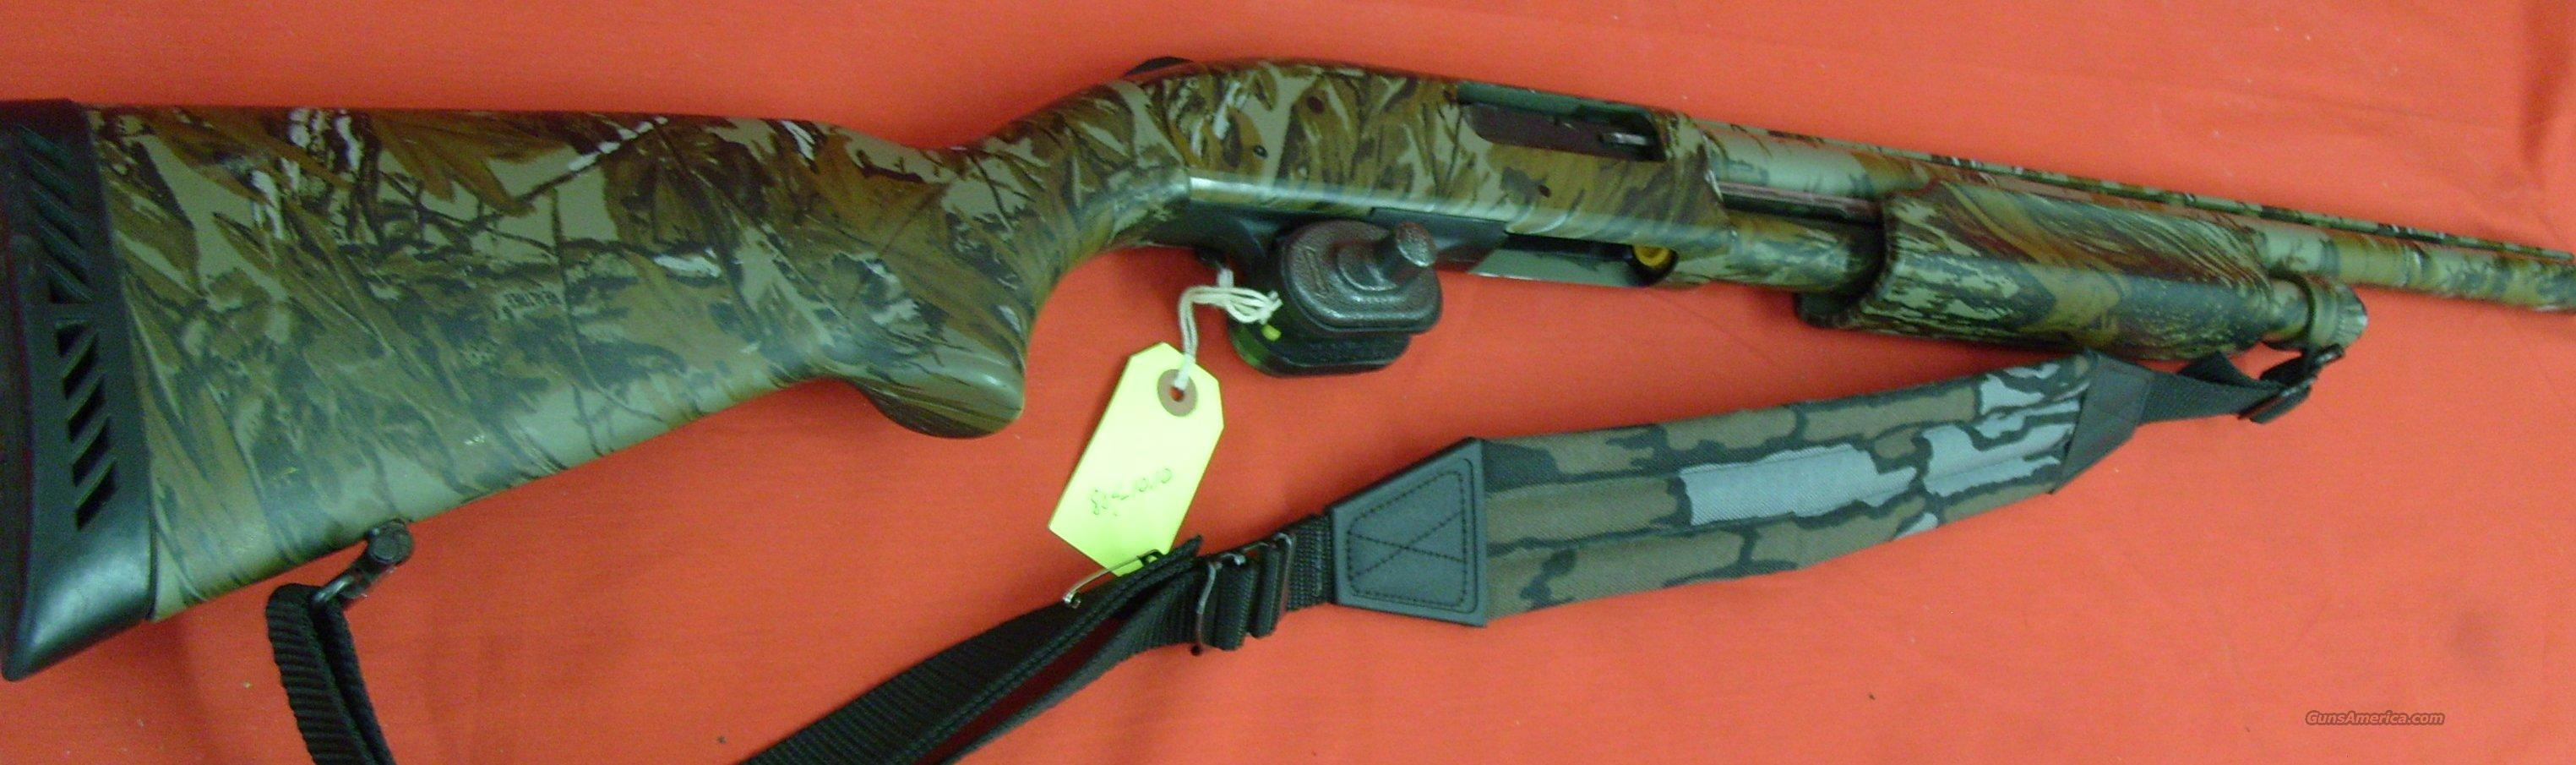 "MOSSBERG 835 TURKEY 12GA-3.5""MAG  Guns > Shotguns > Mossberg Shotguns > Pump > Sporting"